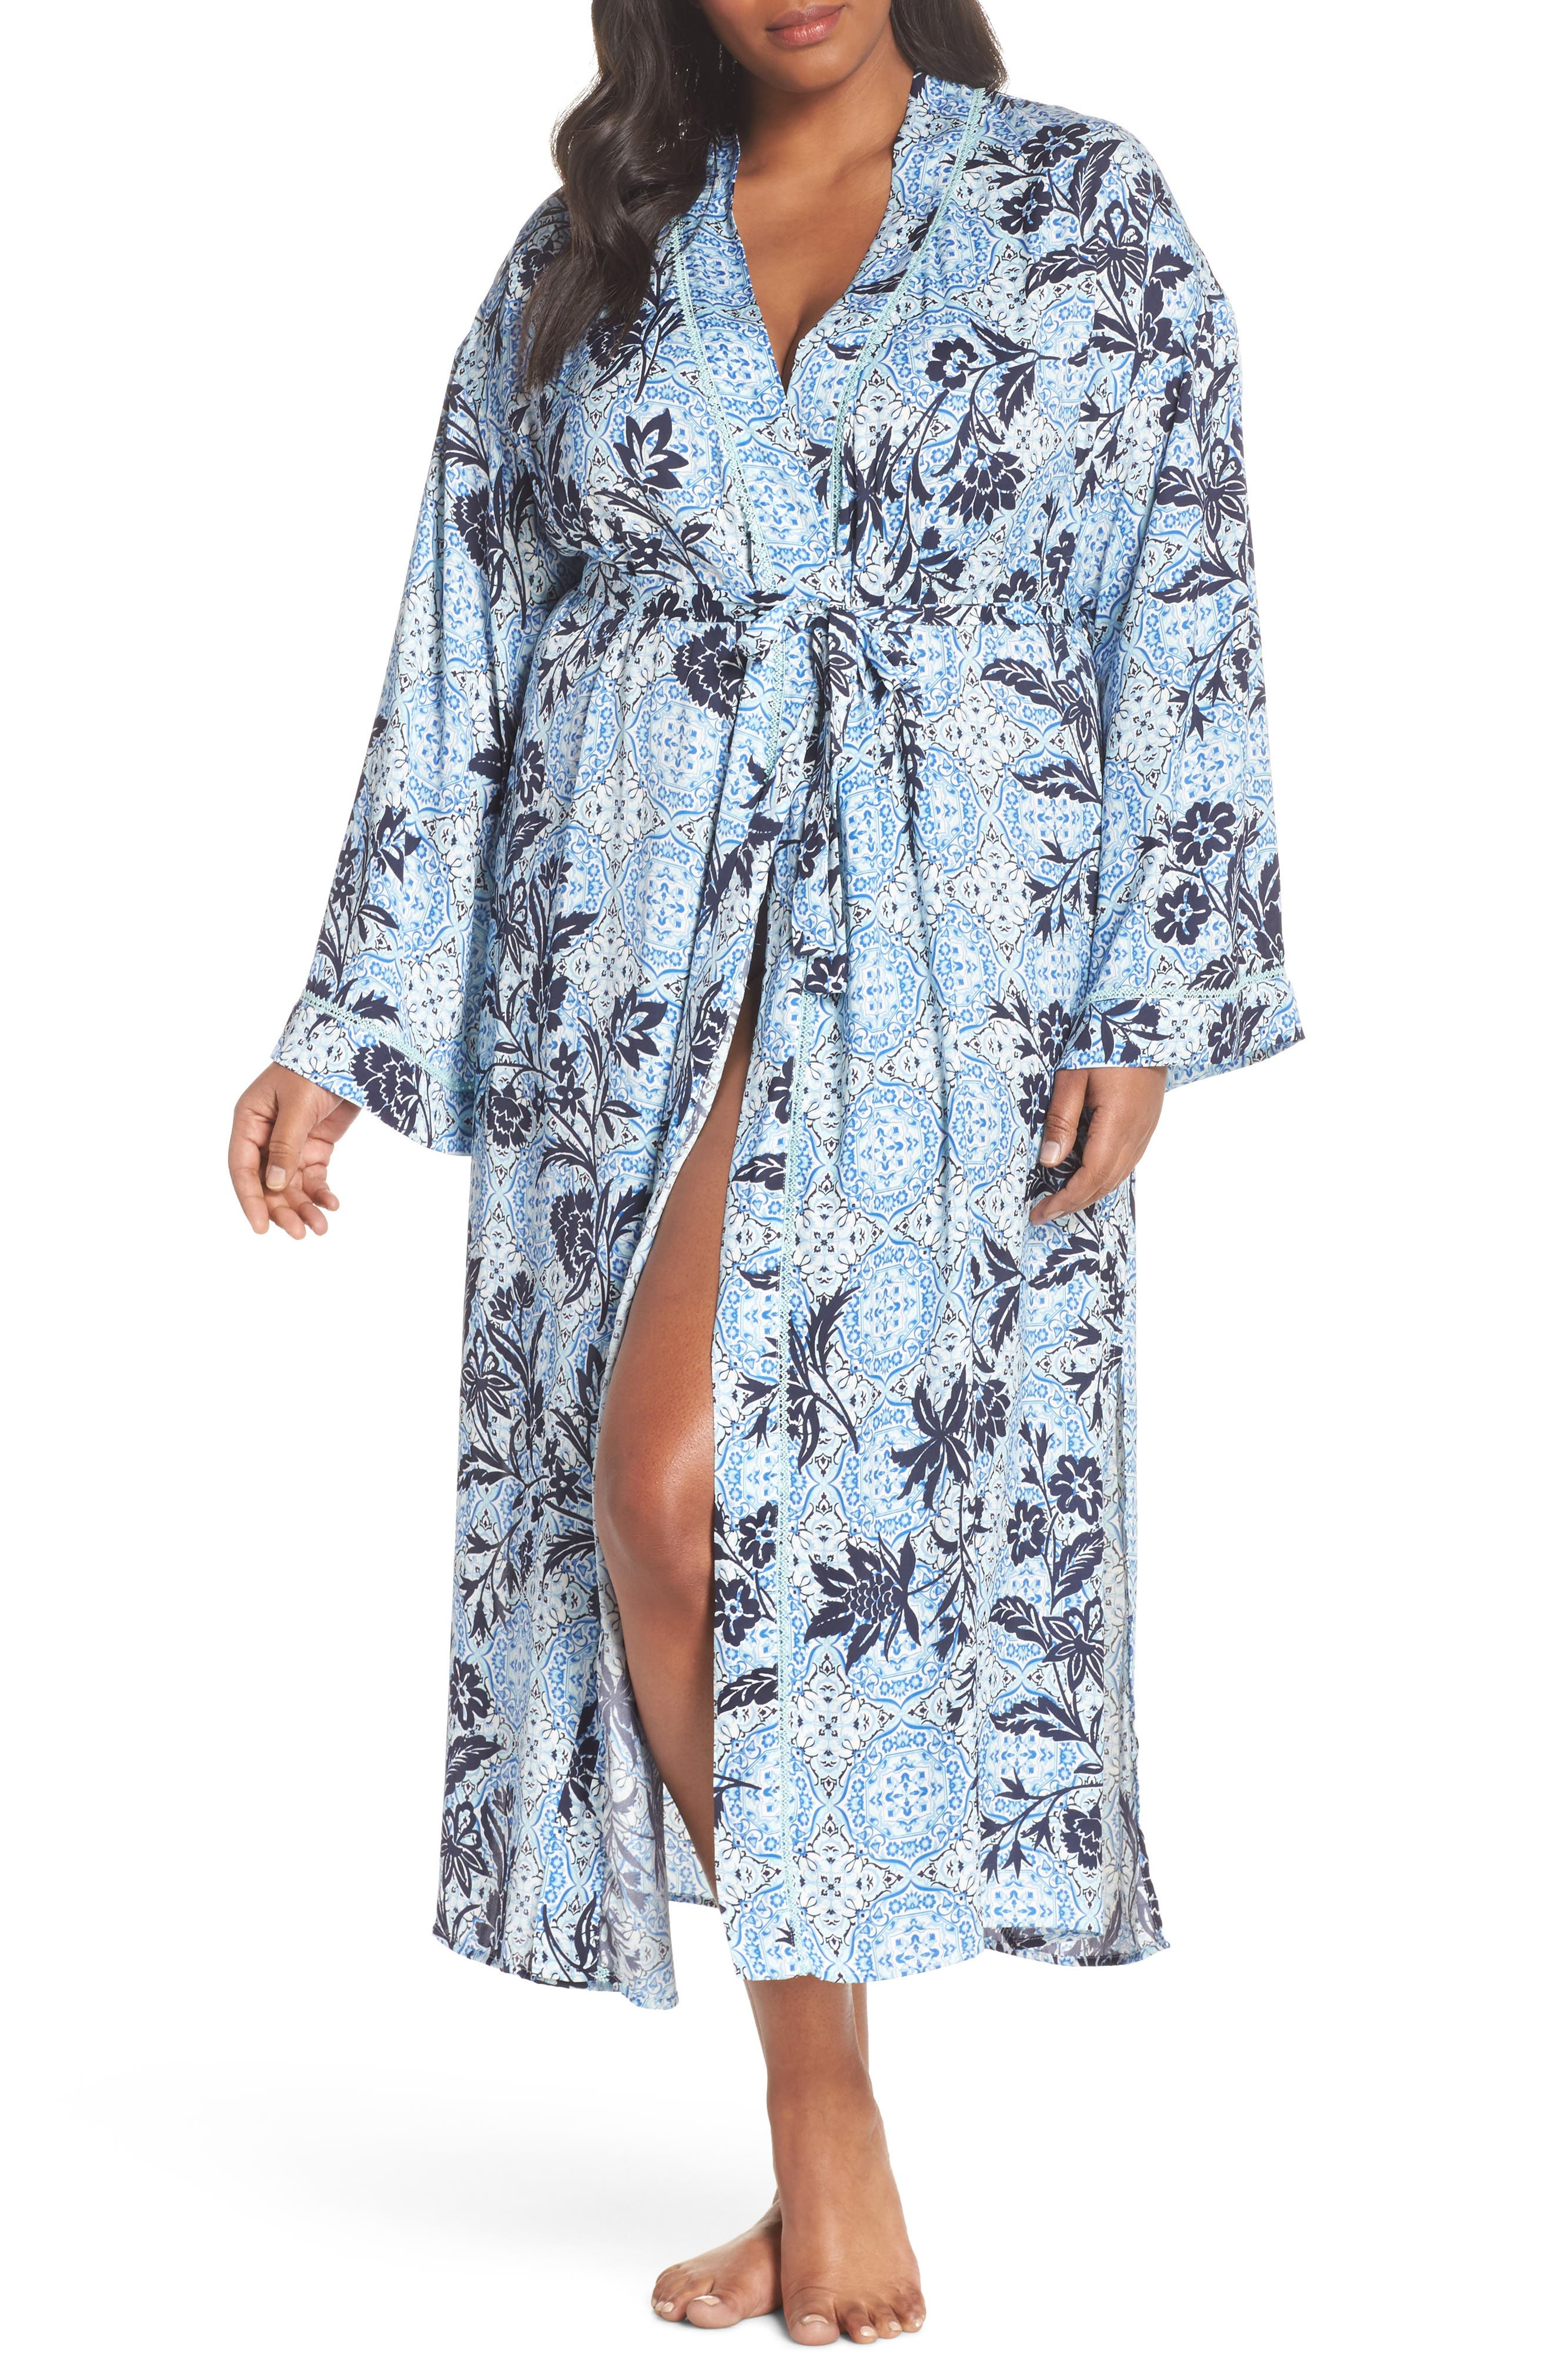 Sweet Dreams Satin Robe,                         Main,                         color, Blue Palace Tile Floral